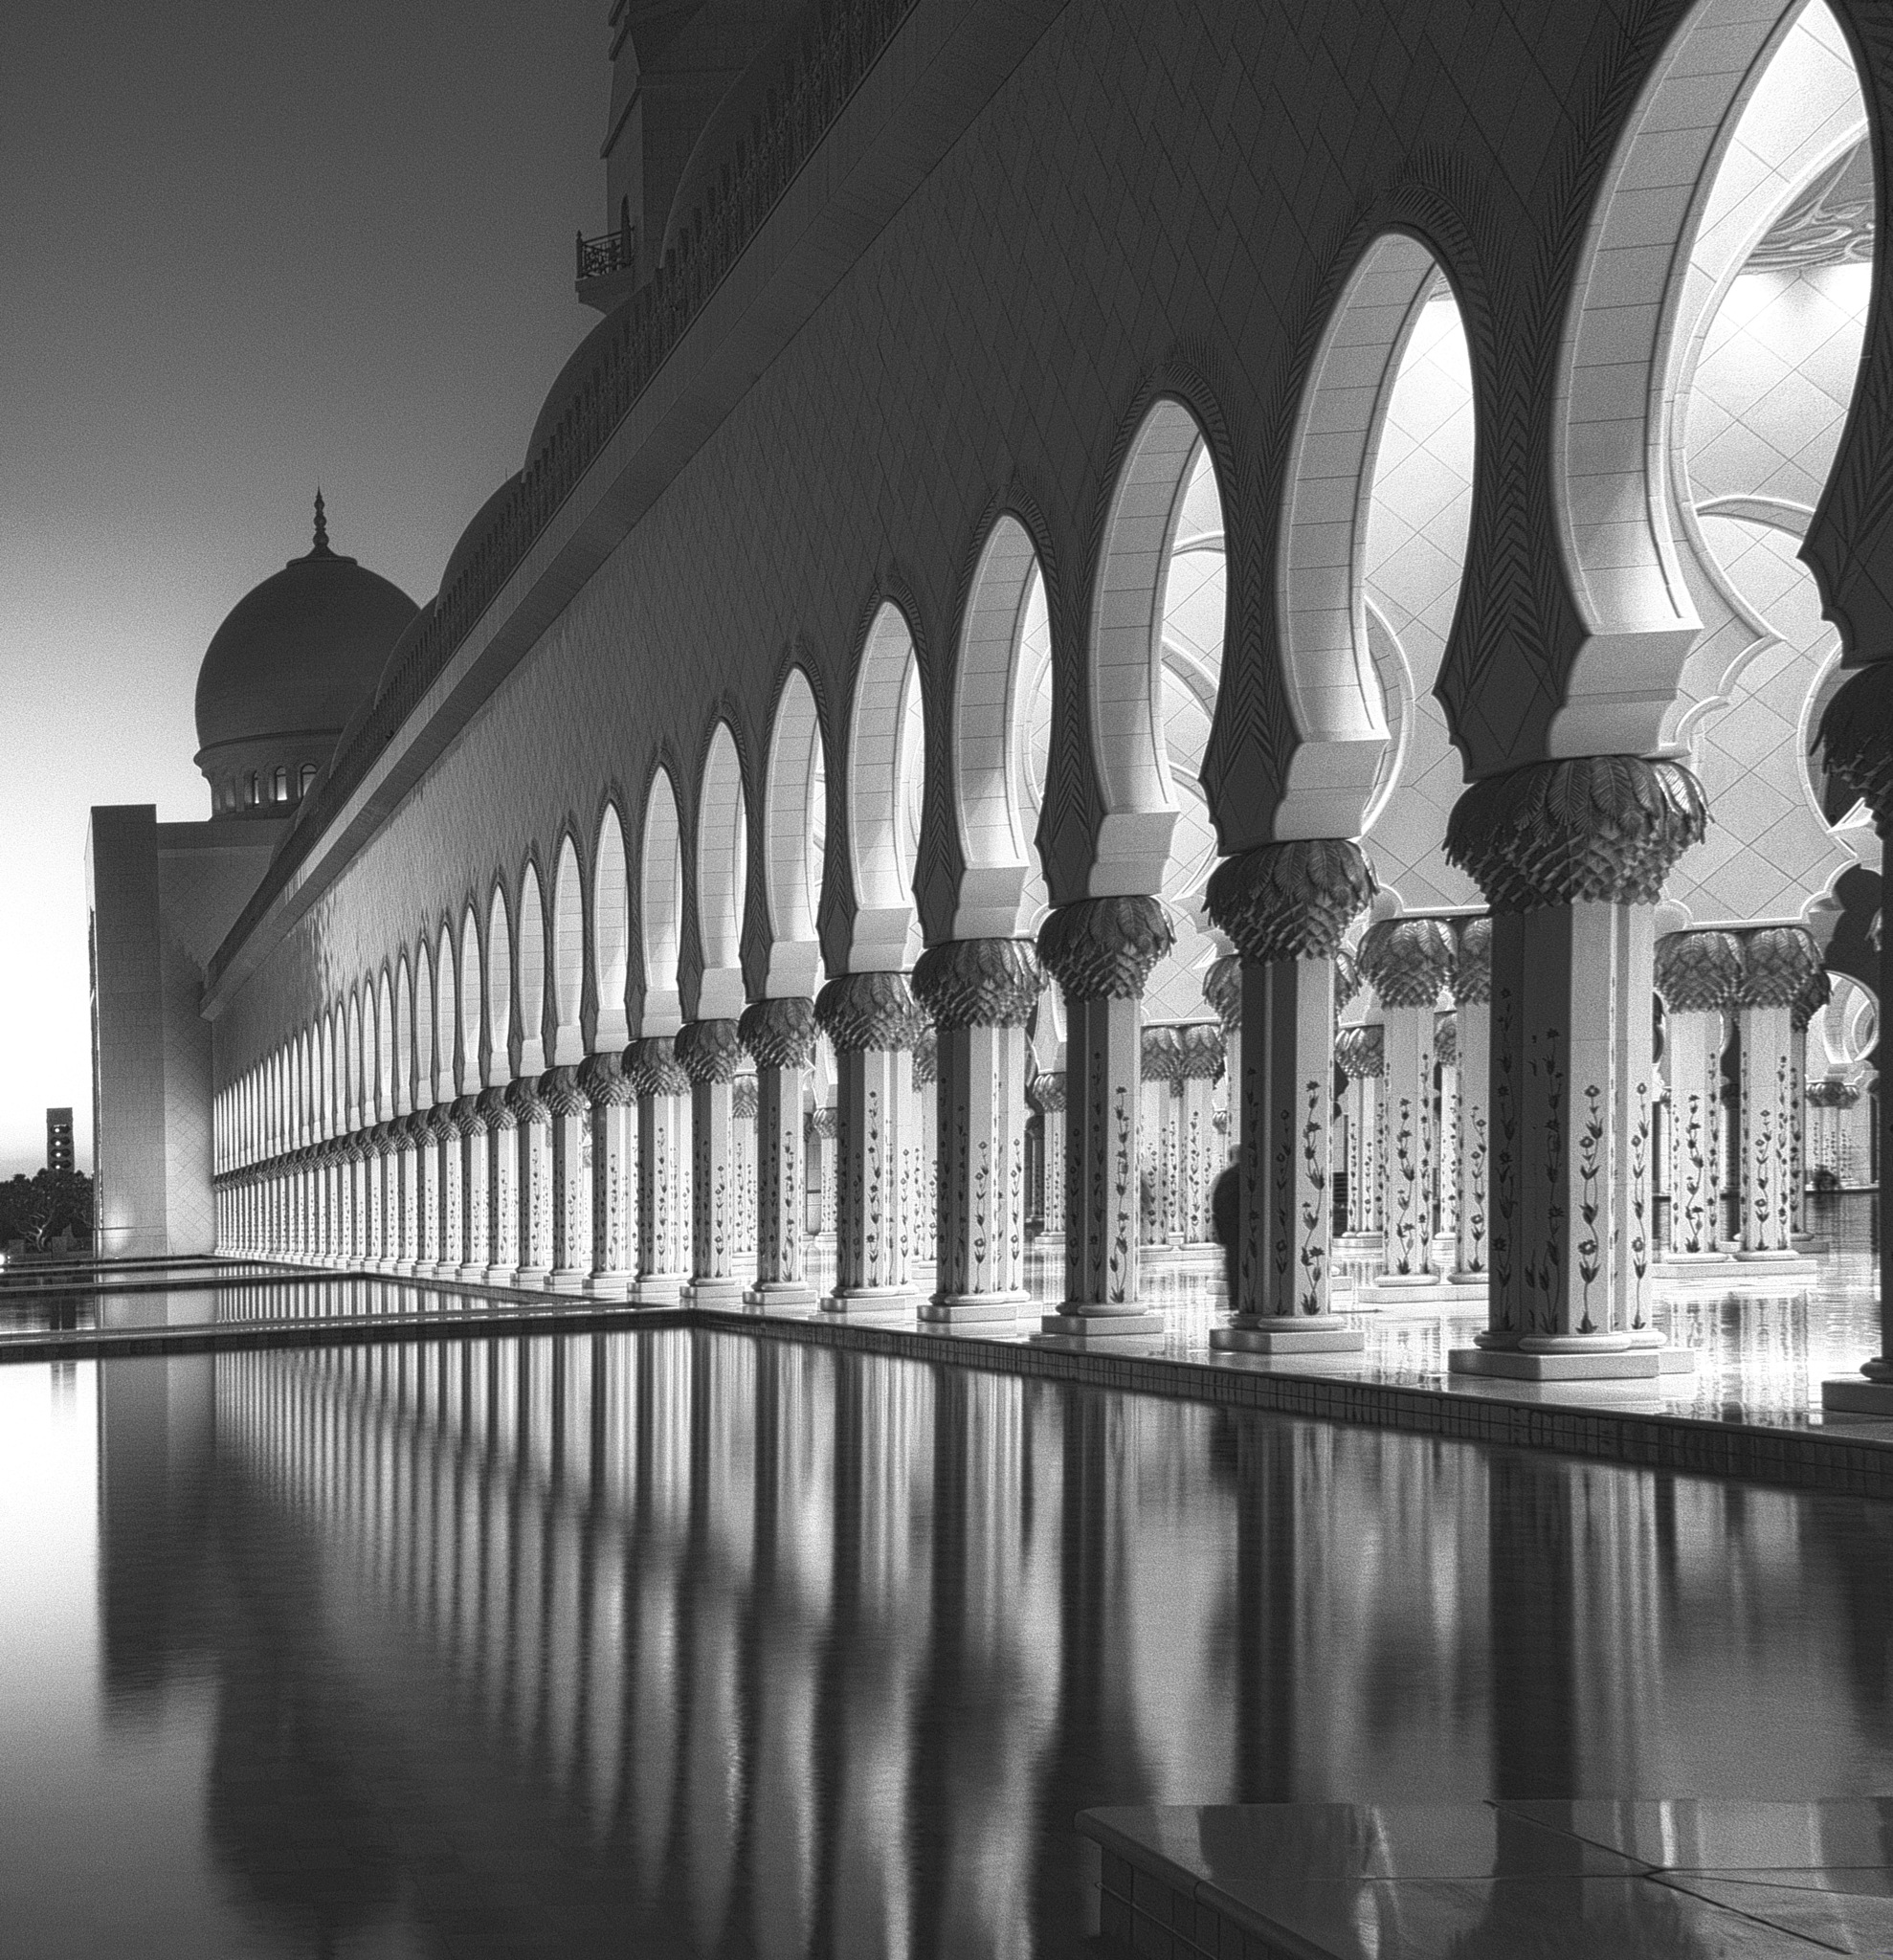 Reflection by Ahmed Thabet